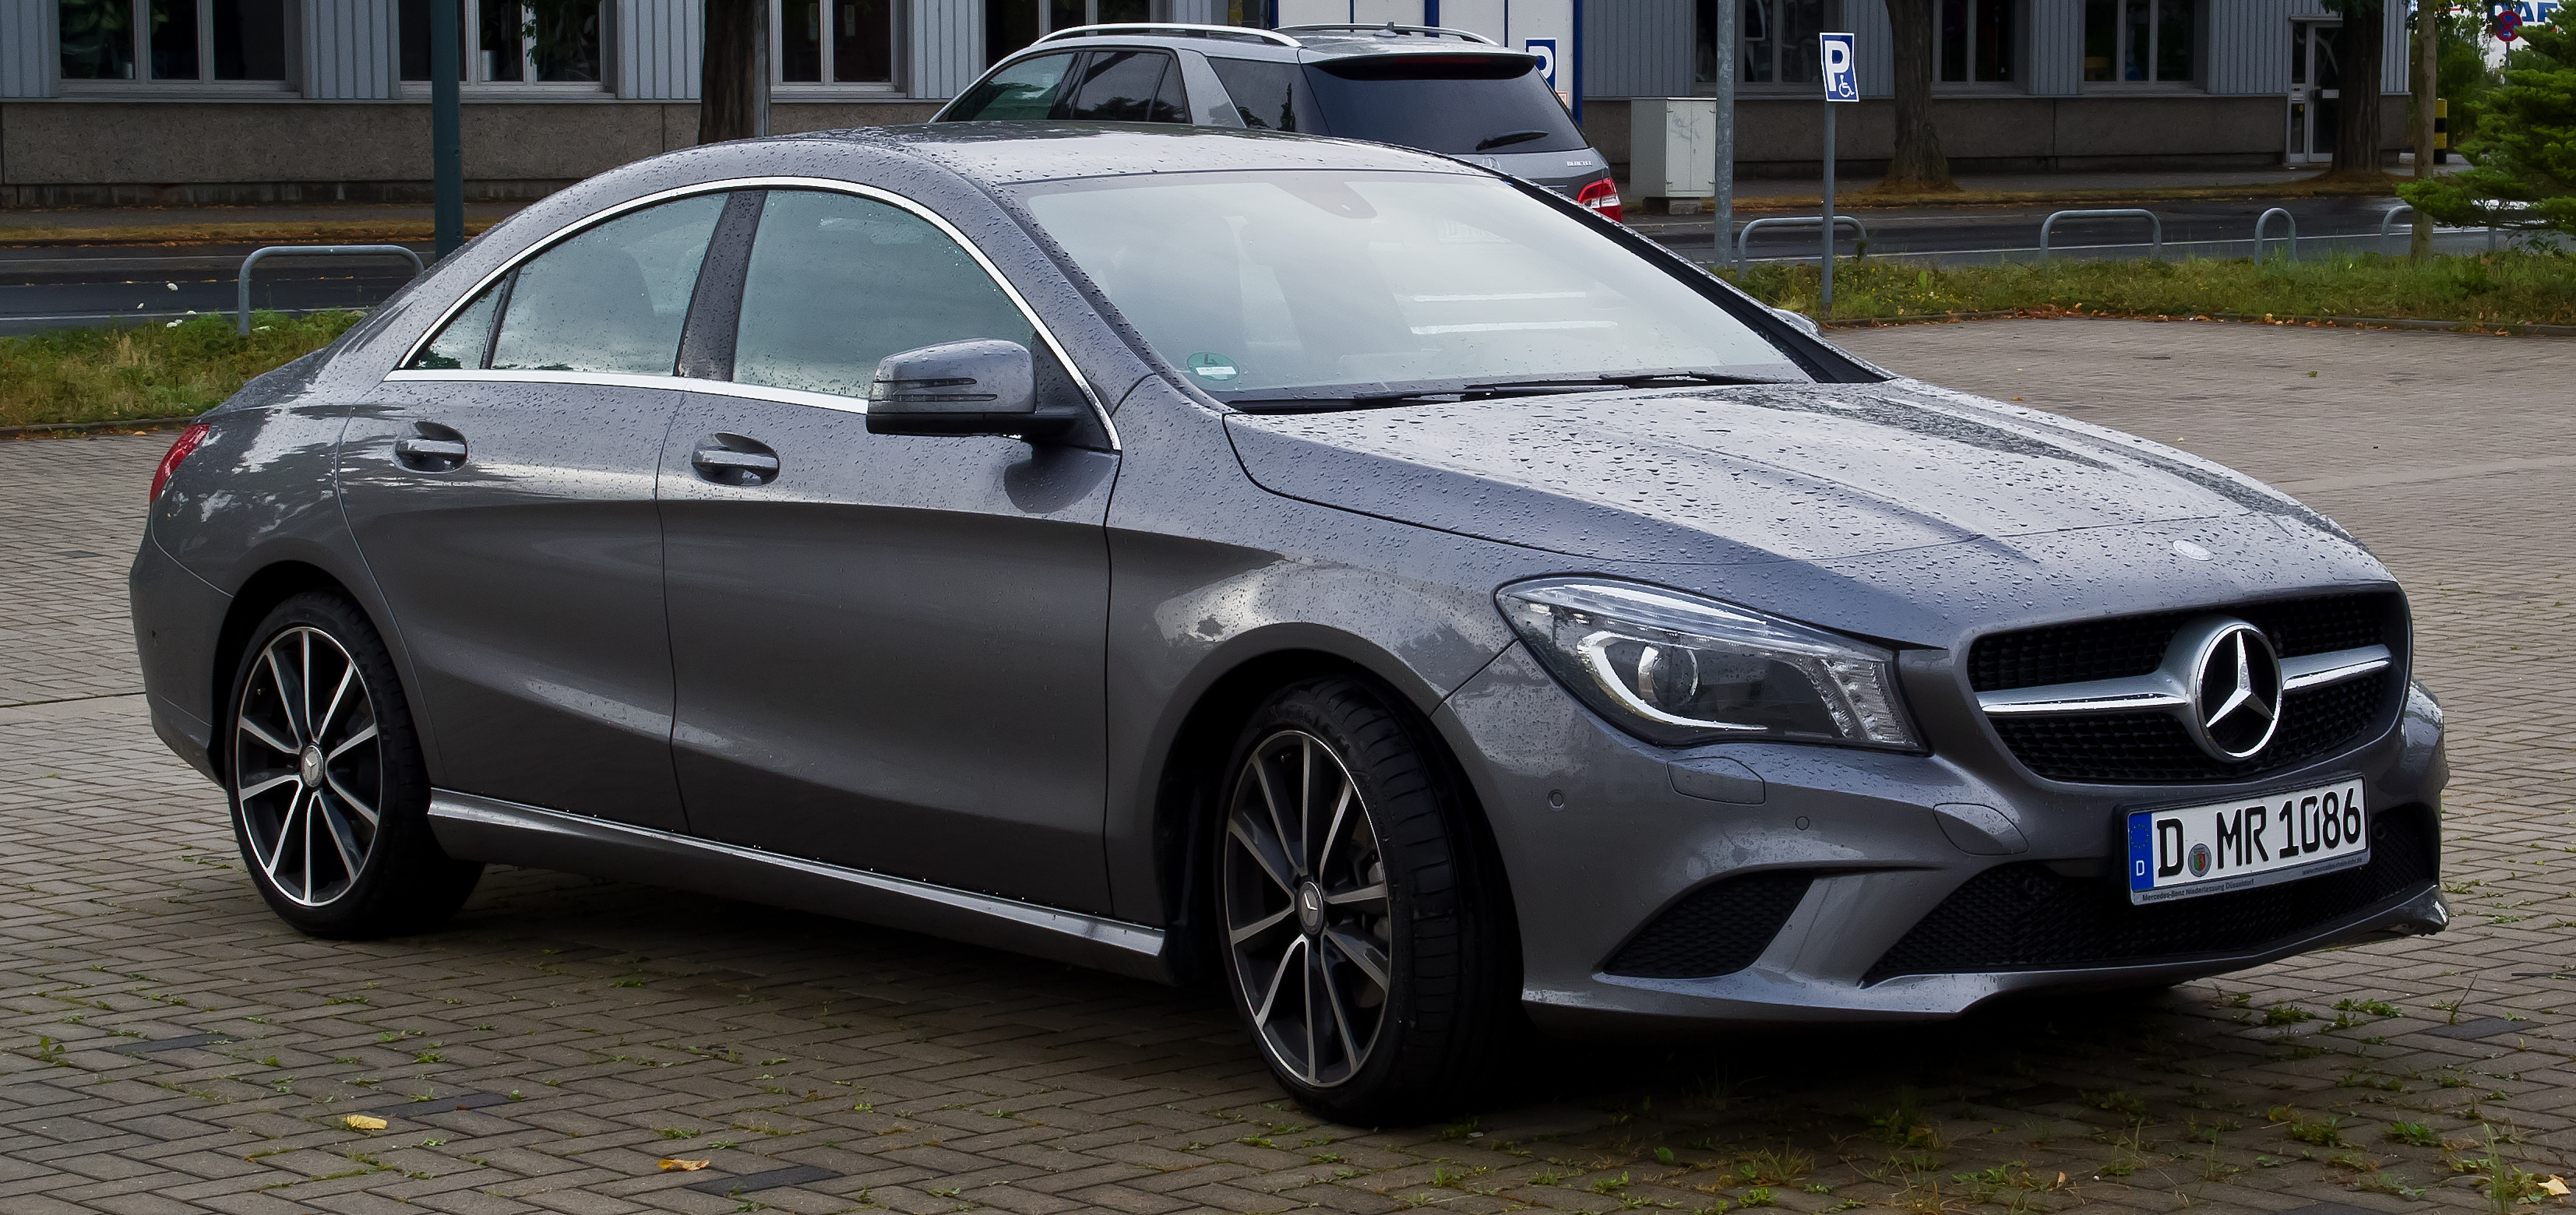 Awesome Mercedes Benz CLA Class